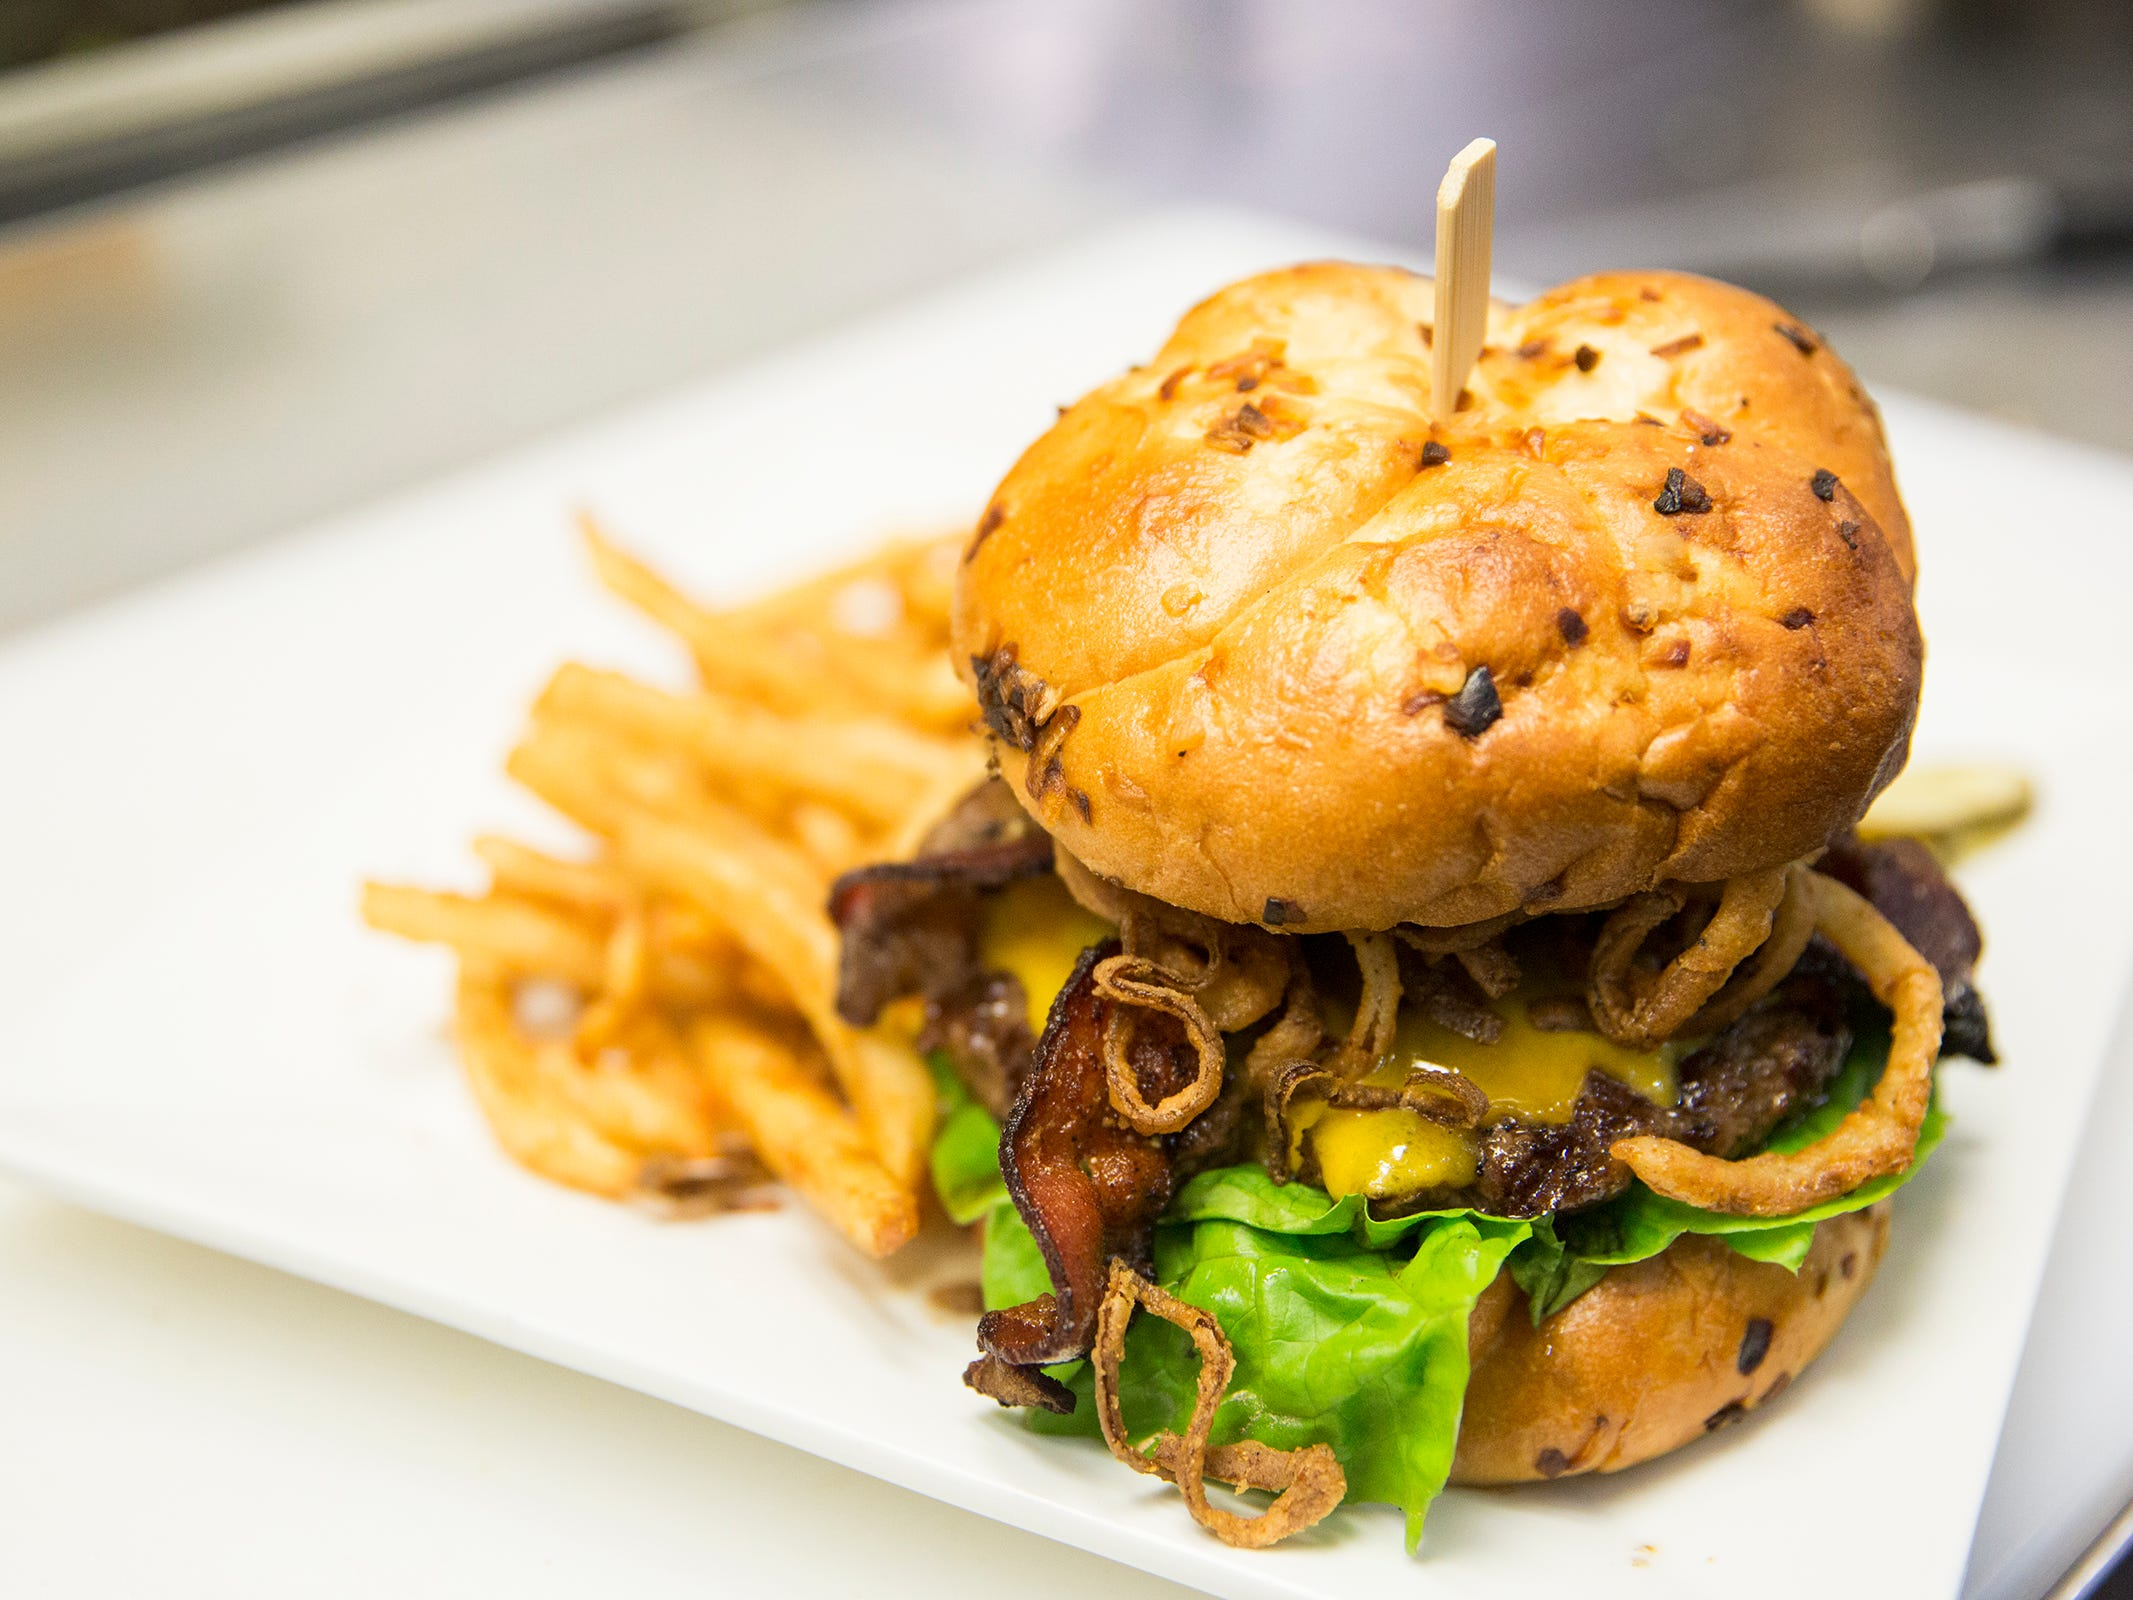 Santiam Brewing showcases their Santiam Pub Burger from the regular menu in Salem on Wednesday, Jan. 2, 2019.